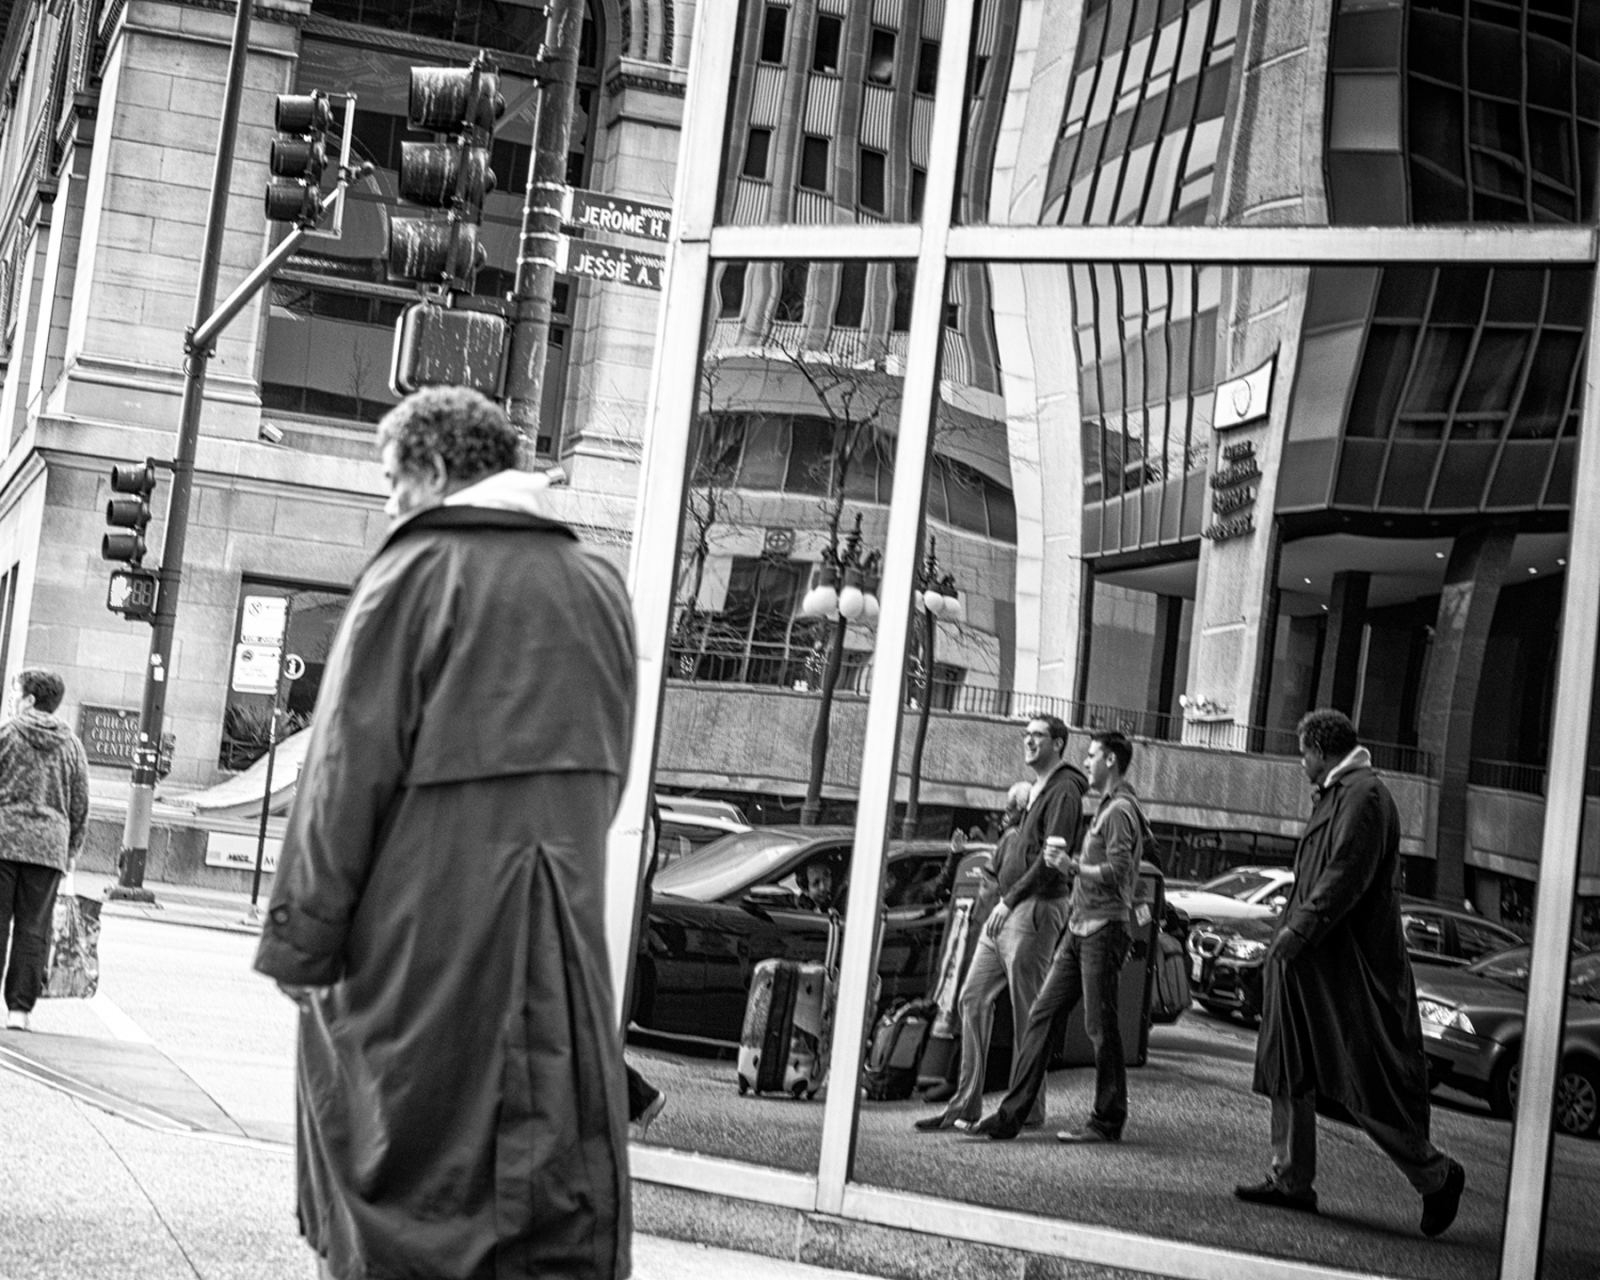 Michigan and Randolph, Chicago 2012